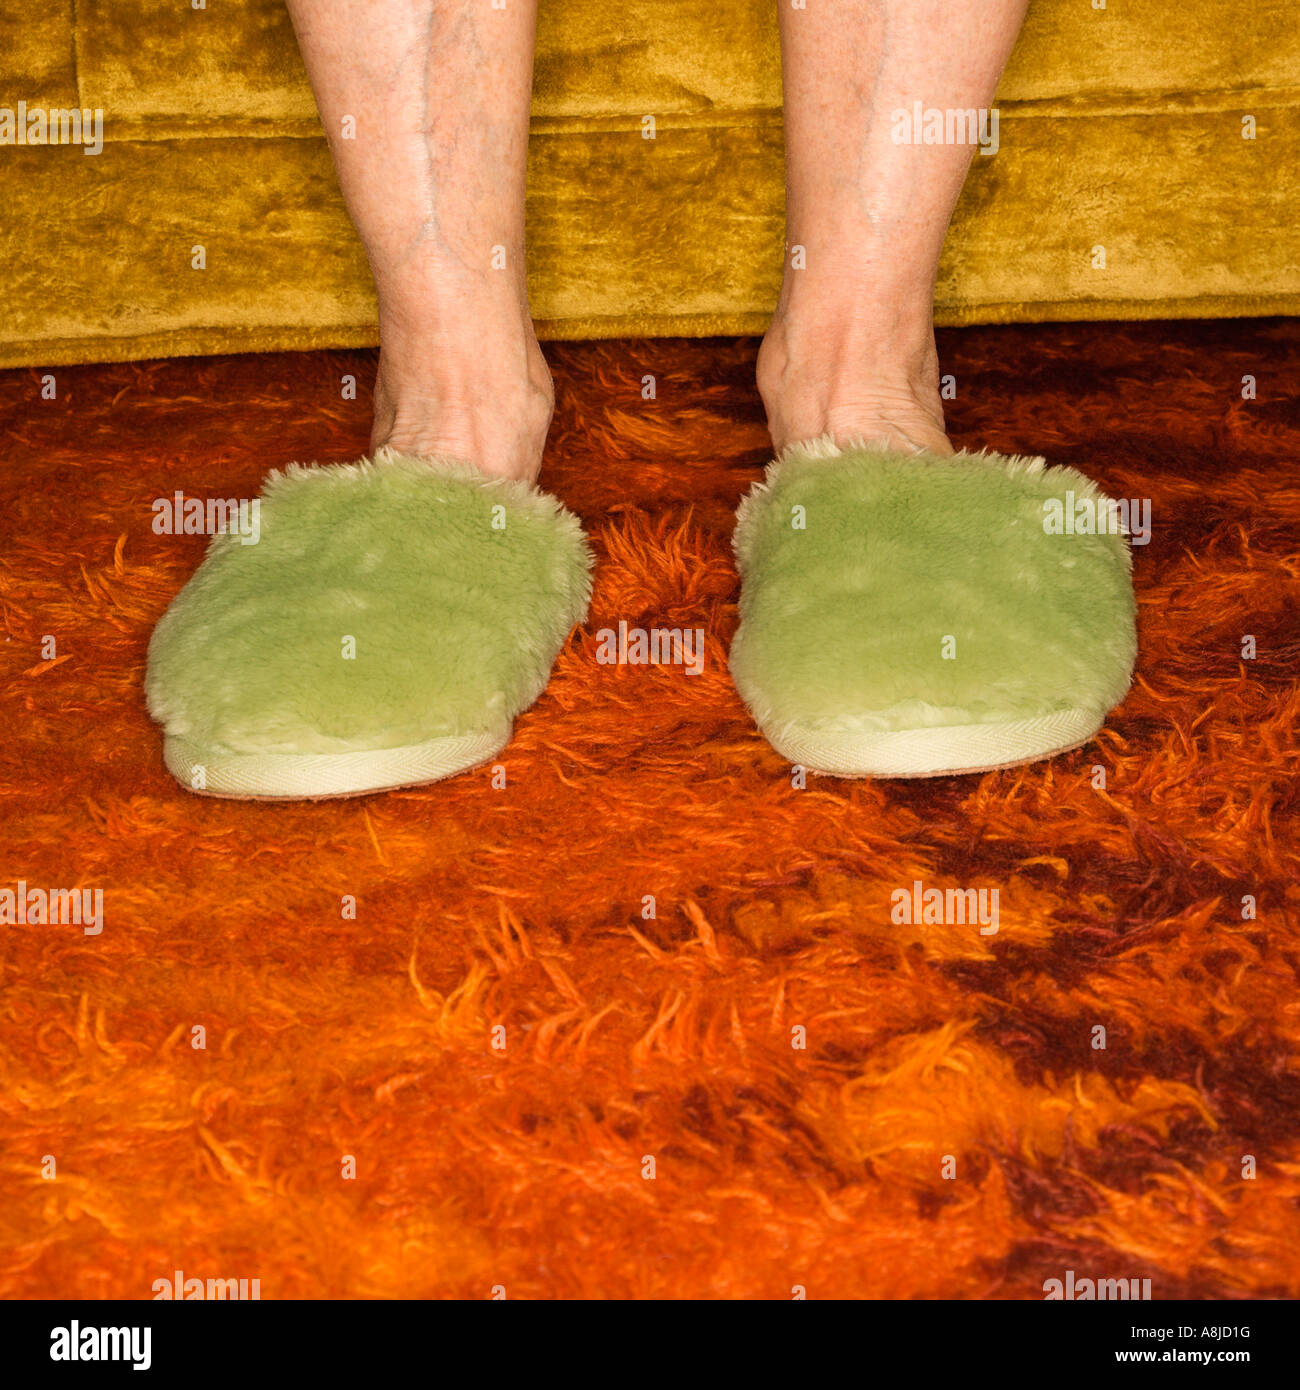 Caucasian senior female feet wearing green bedroom slippers on carpet - Stock Image